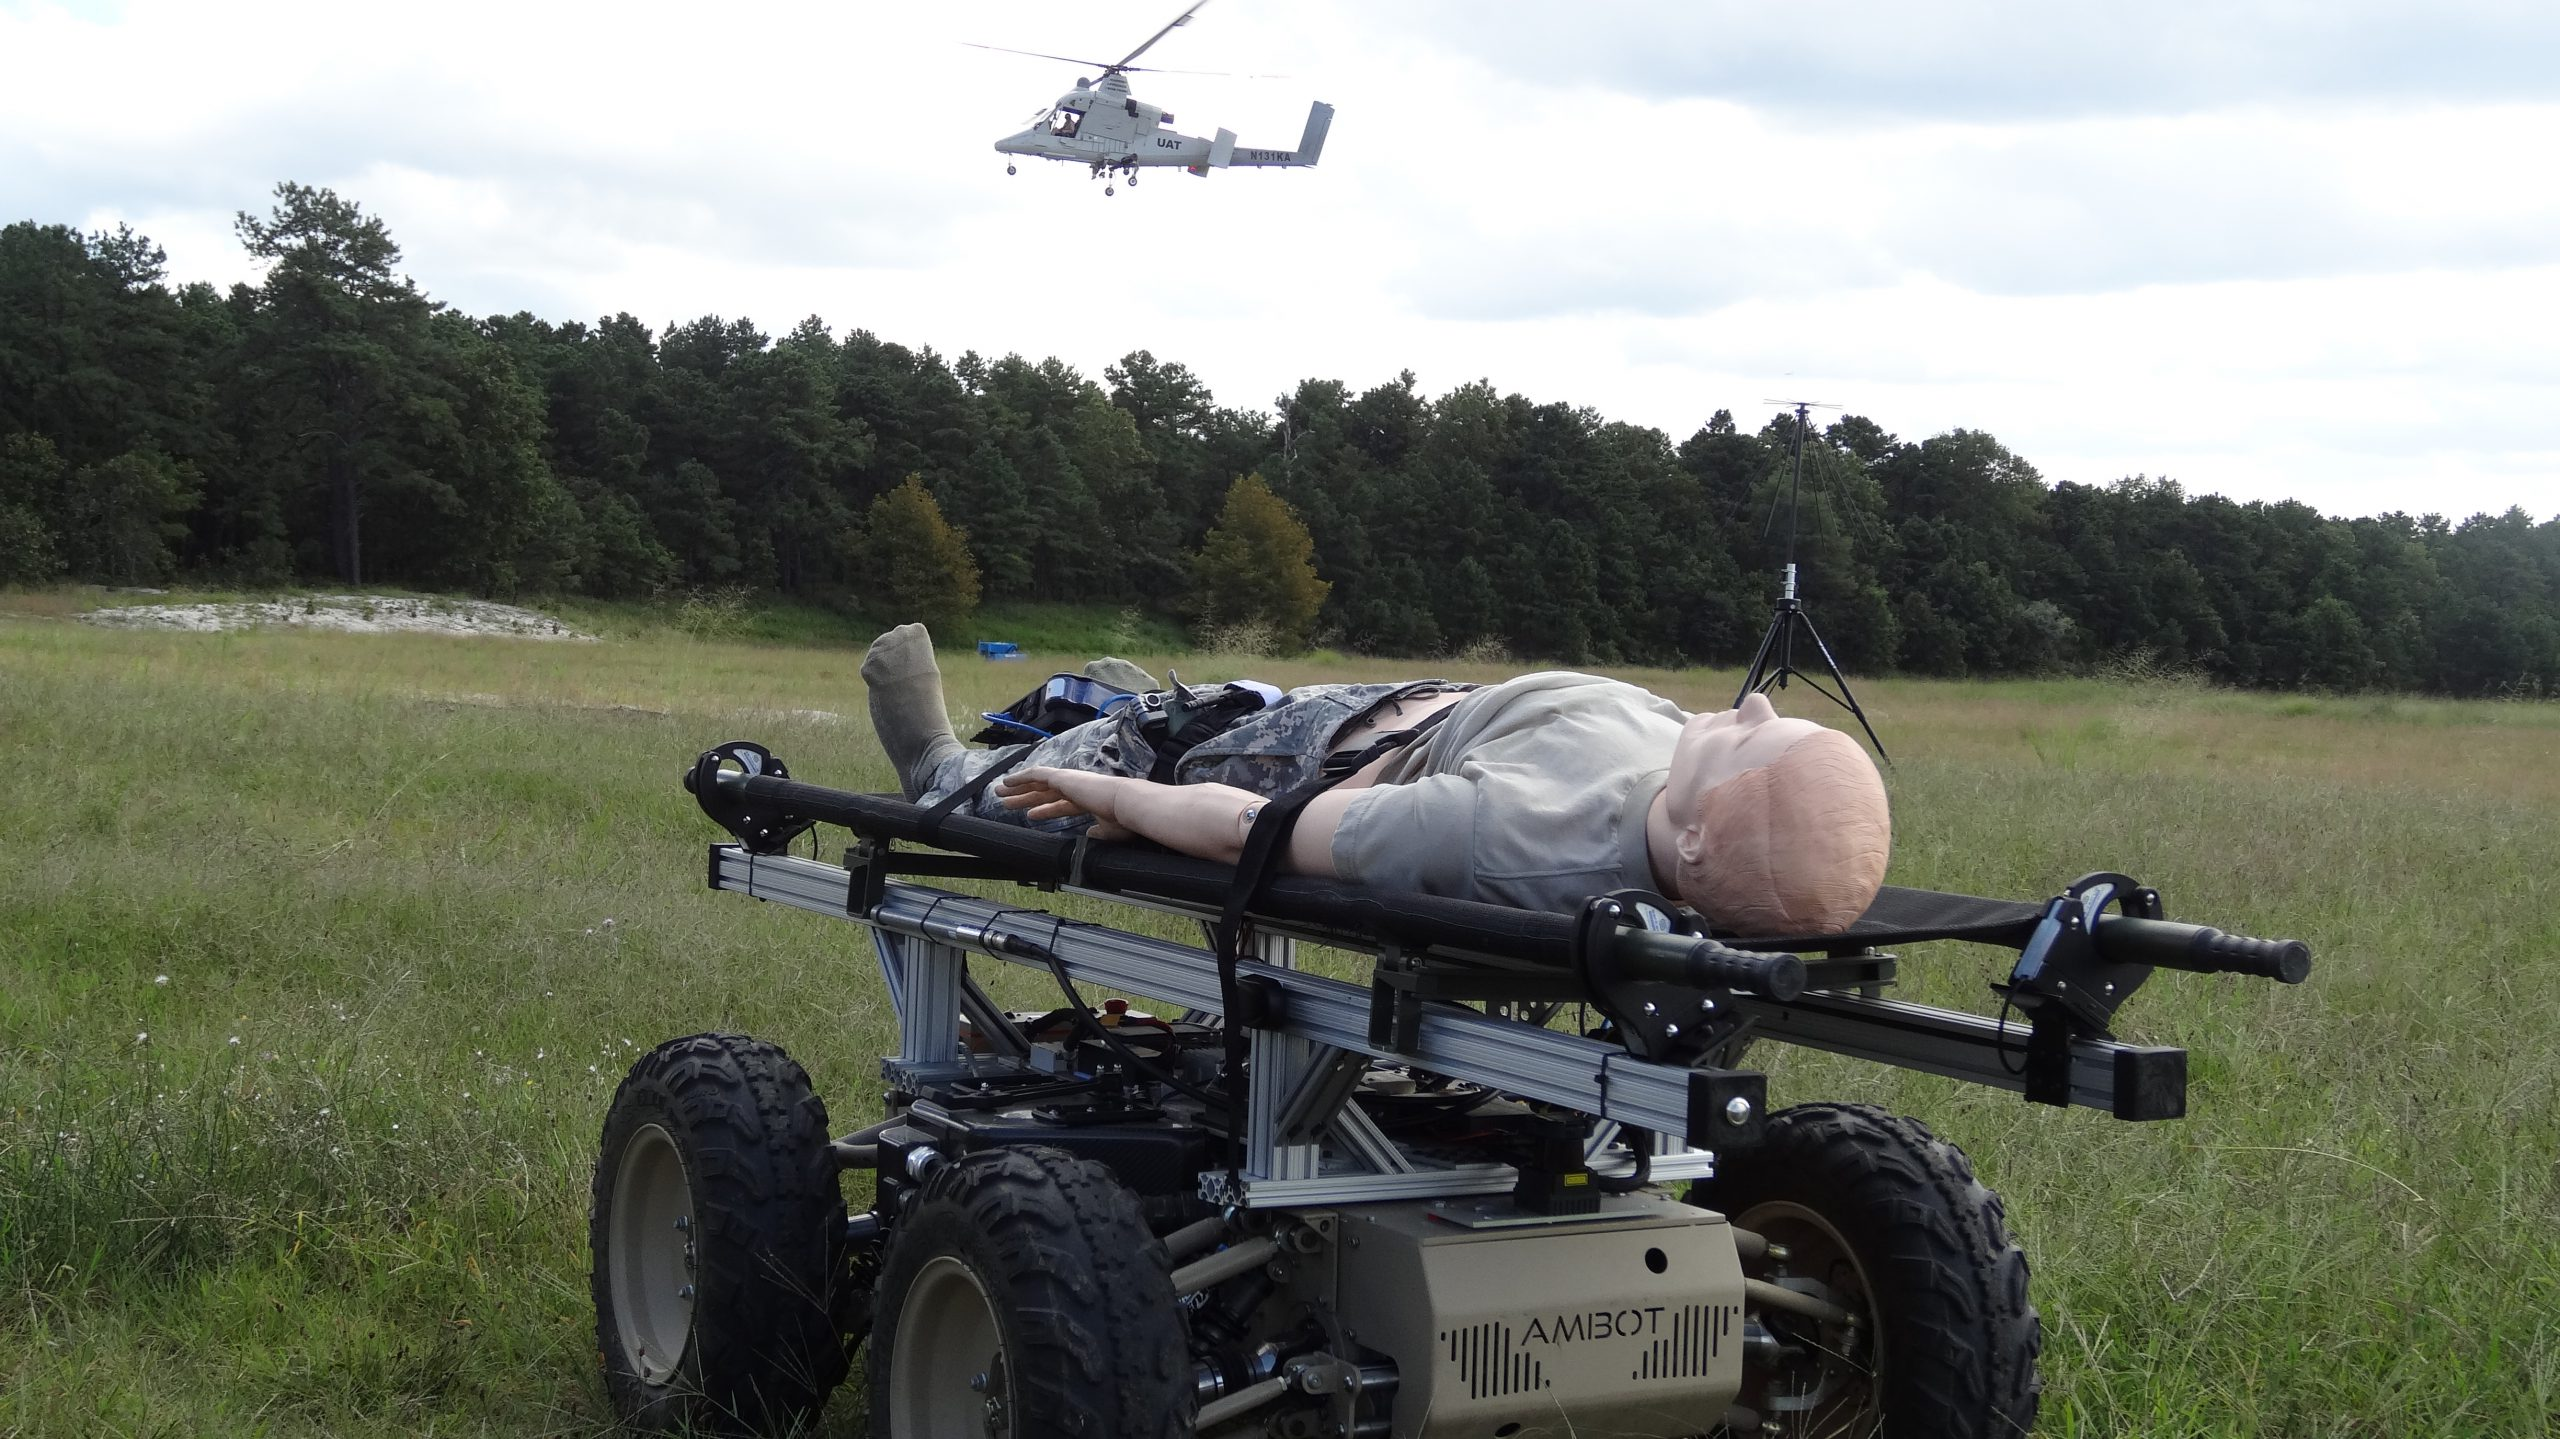 The Navy, Army and Air Force conduct a casualty evacuation (CASEVAC) response event at Fort Dix, N.J. in August 2016. The Navy tested its common control system during the event to show the potential use of unmanned systems for automated CASEVACs. (U.S. Army photo)